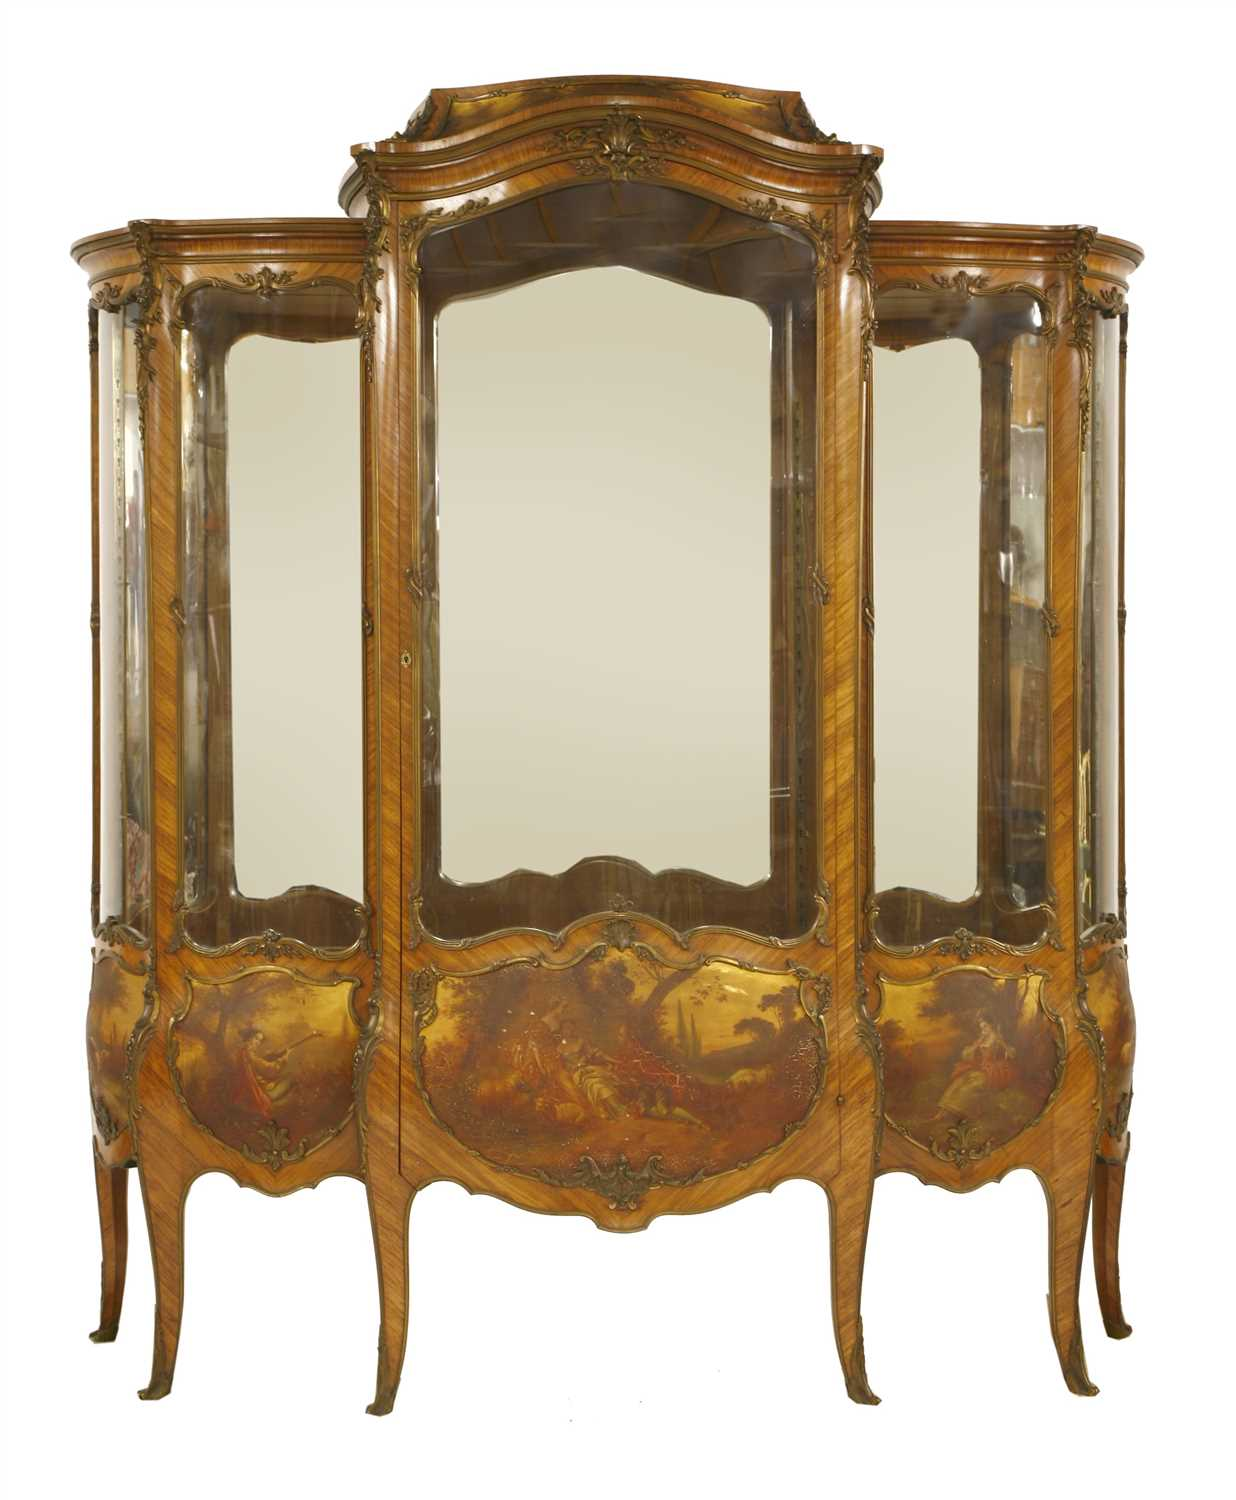 826 - A French kingwood and gilt bronze-mounted vitrine,